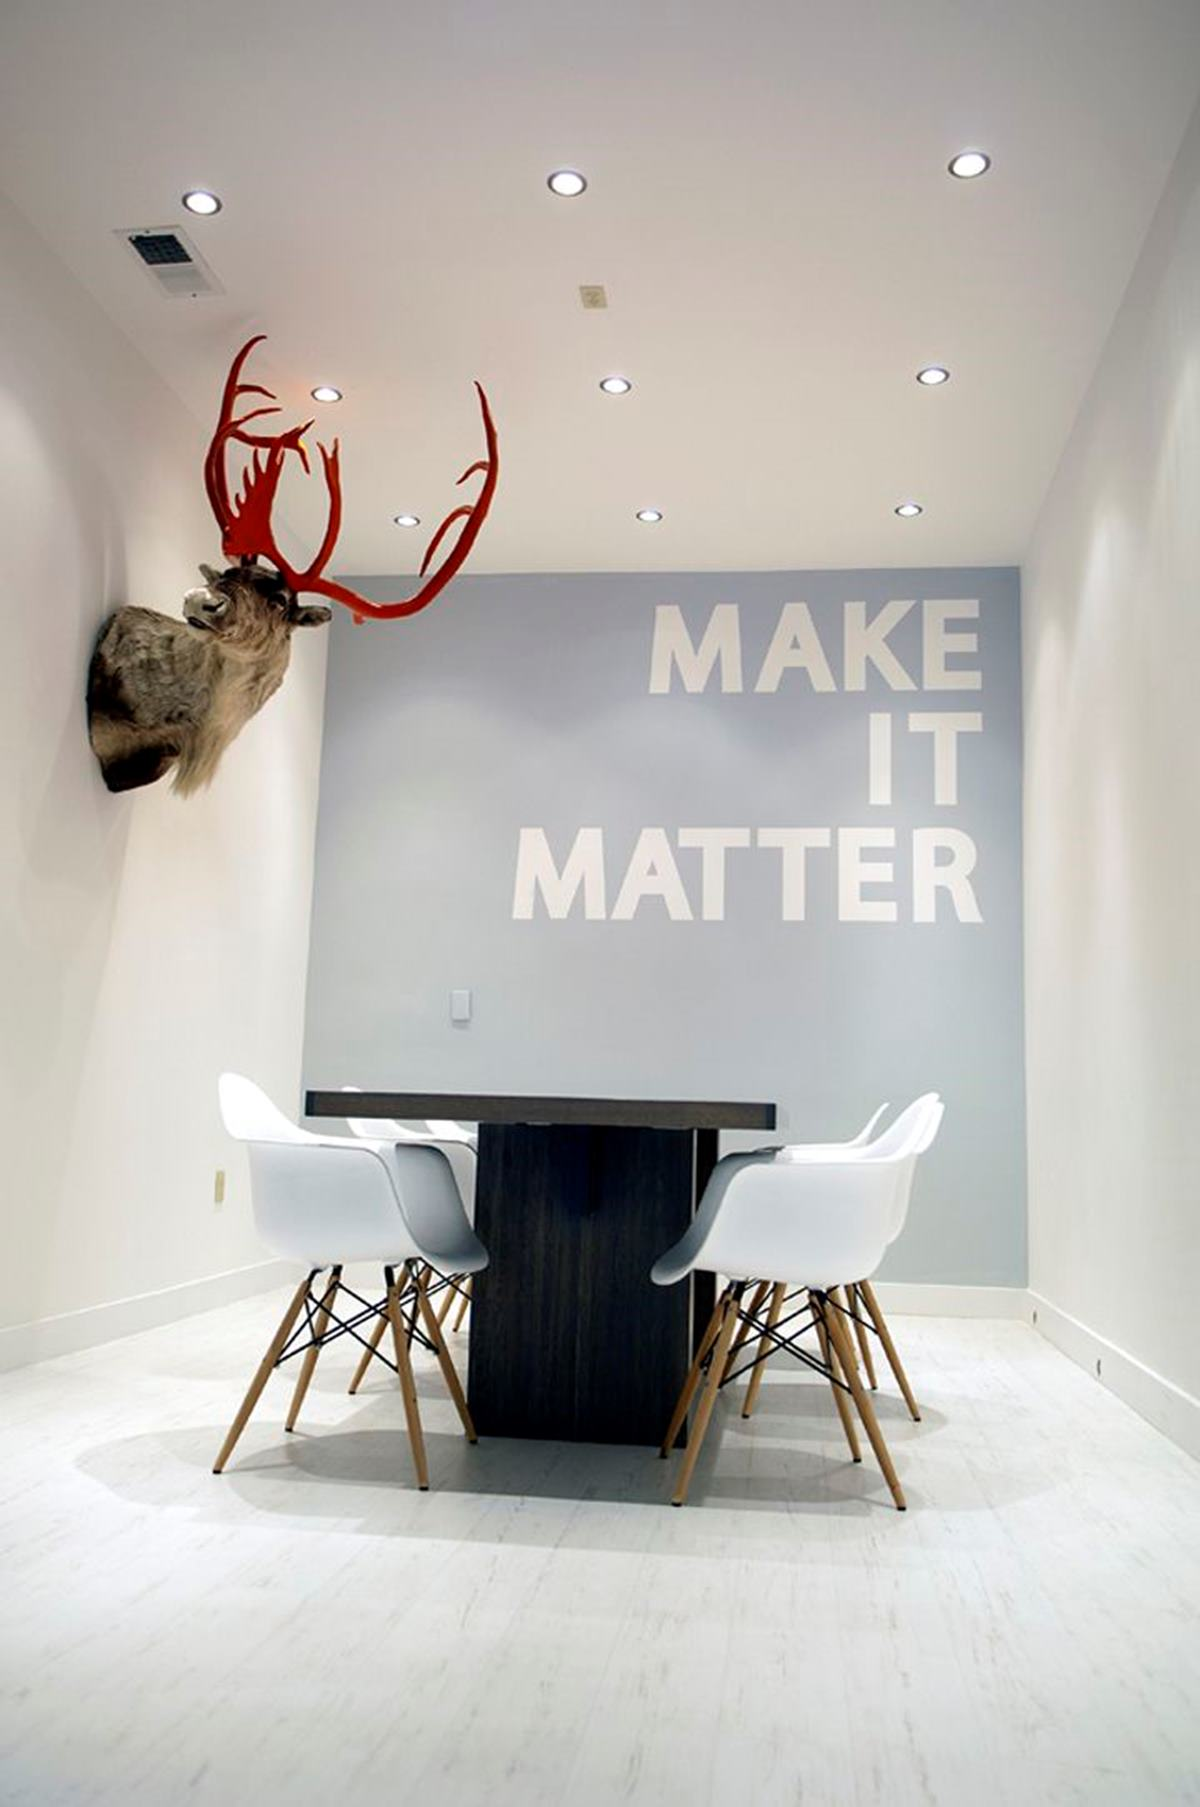 This taxidermy inspiration